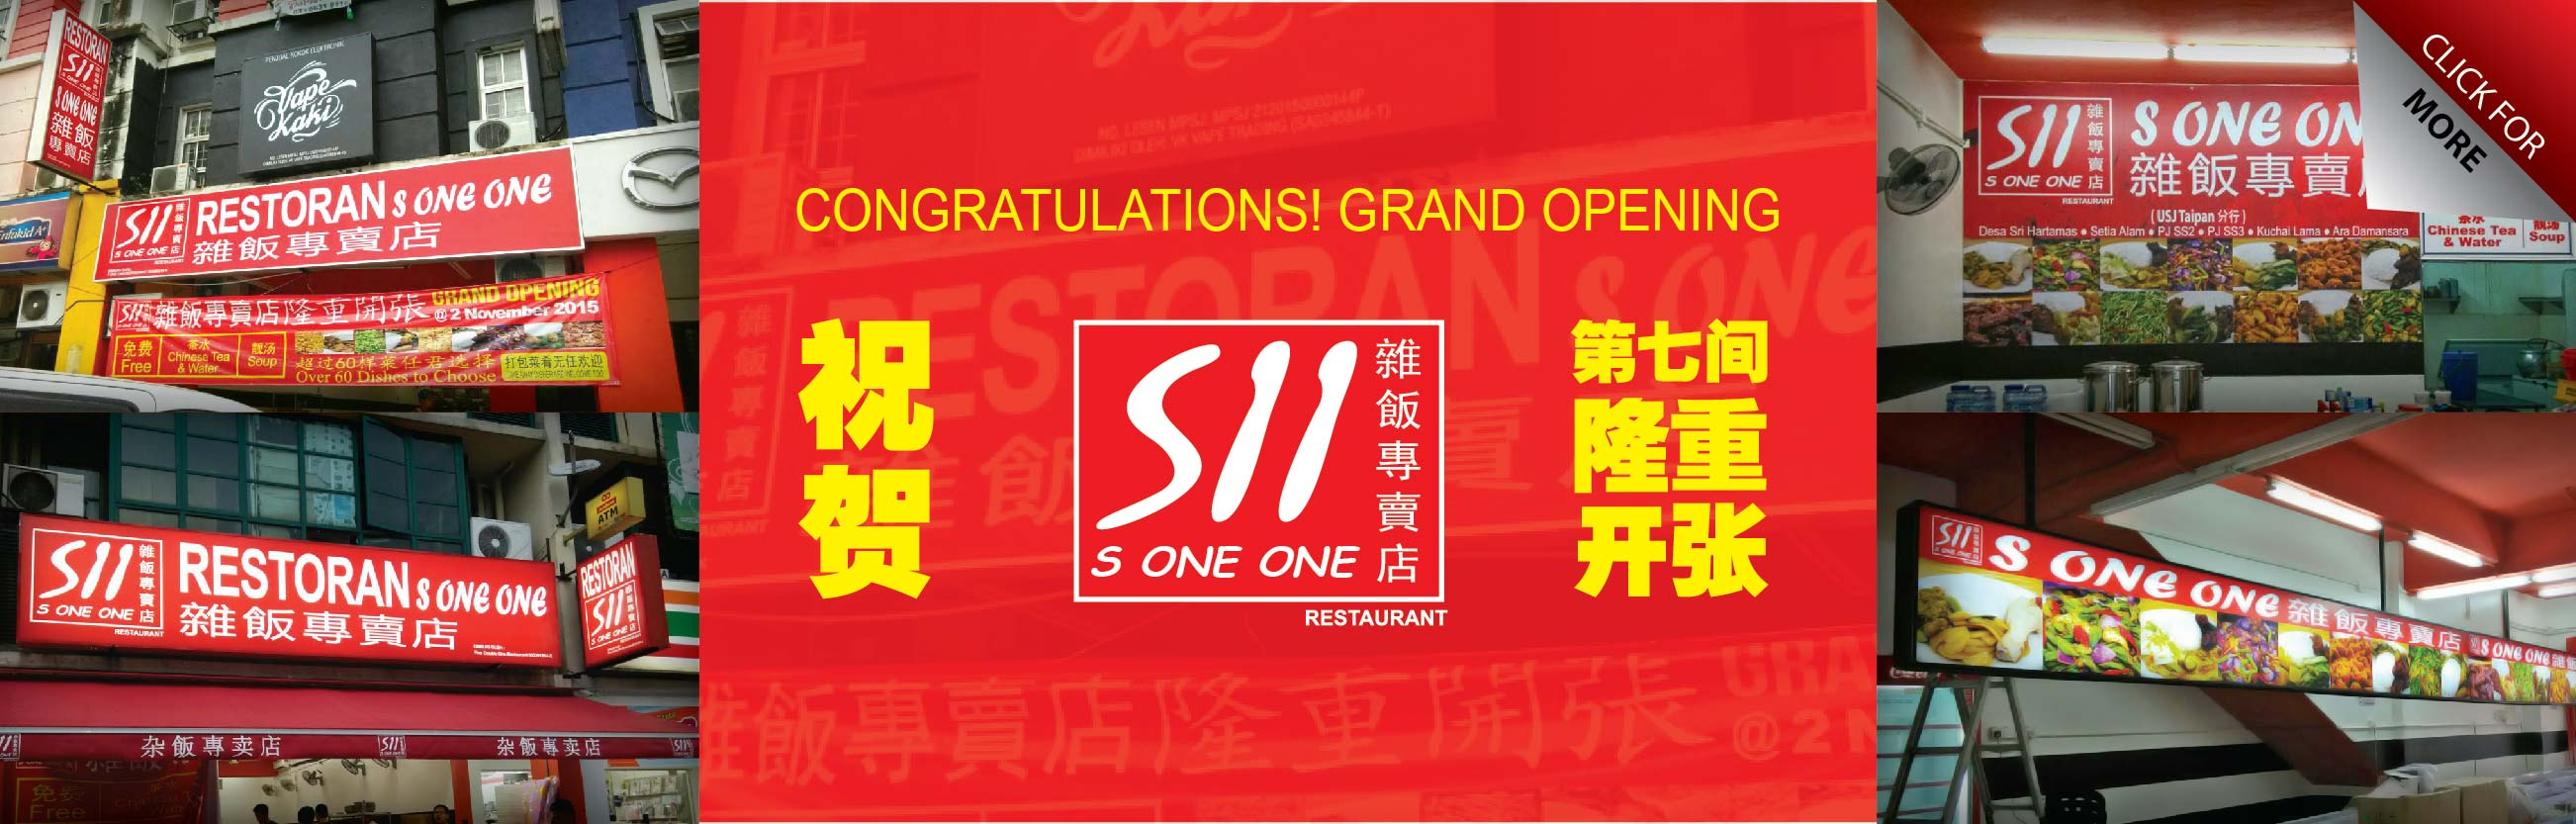 S11 Mix Rice_Grand Opening